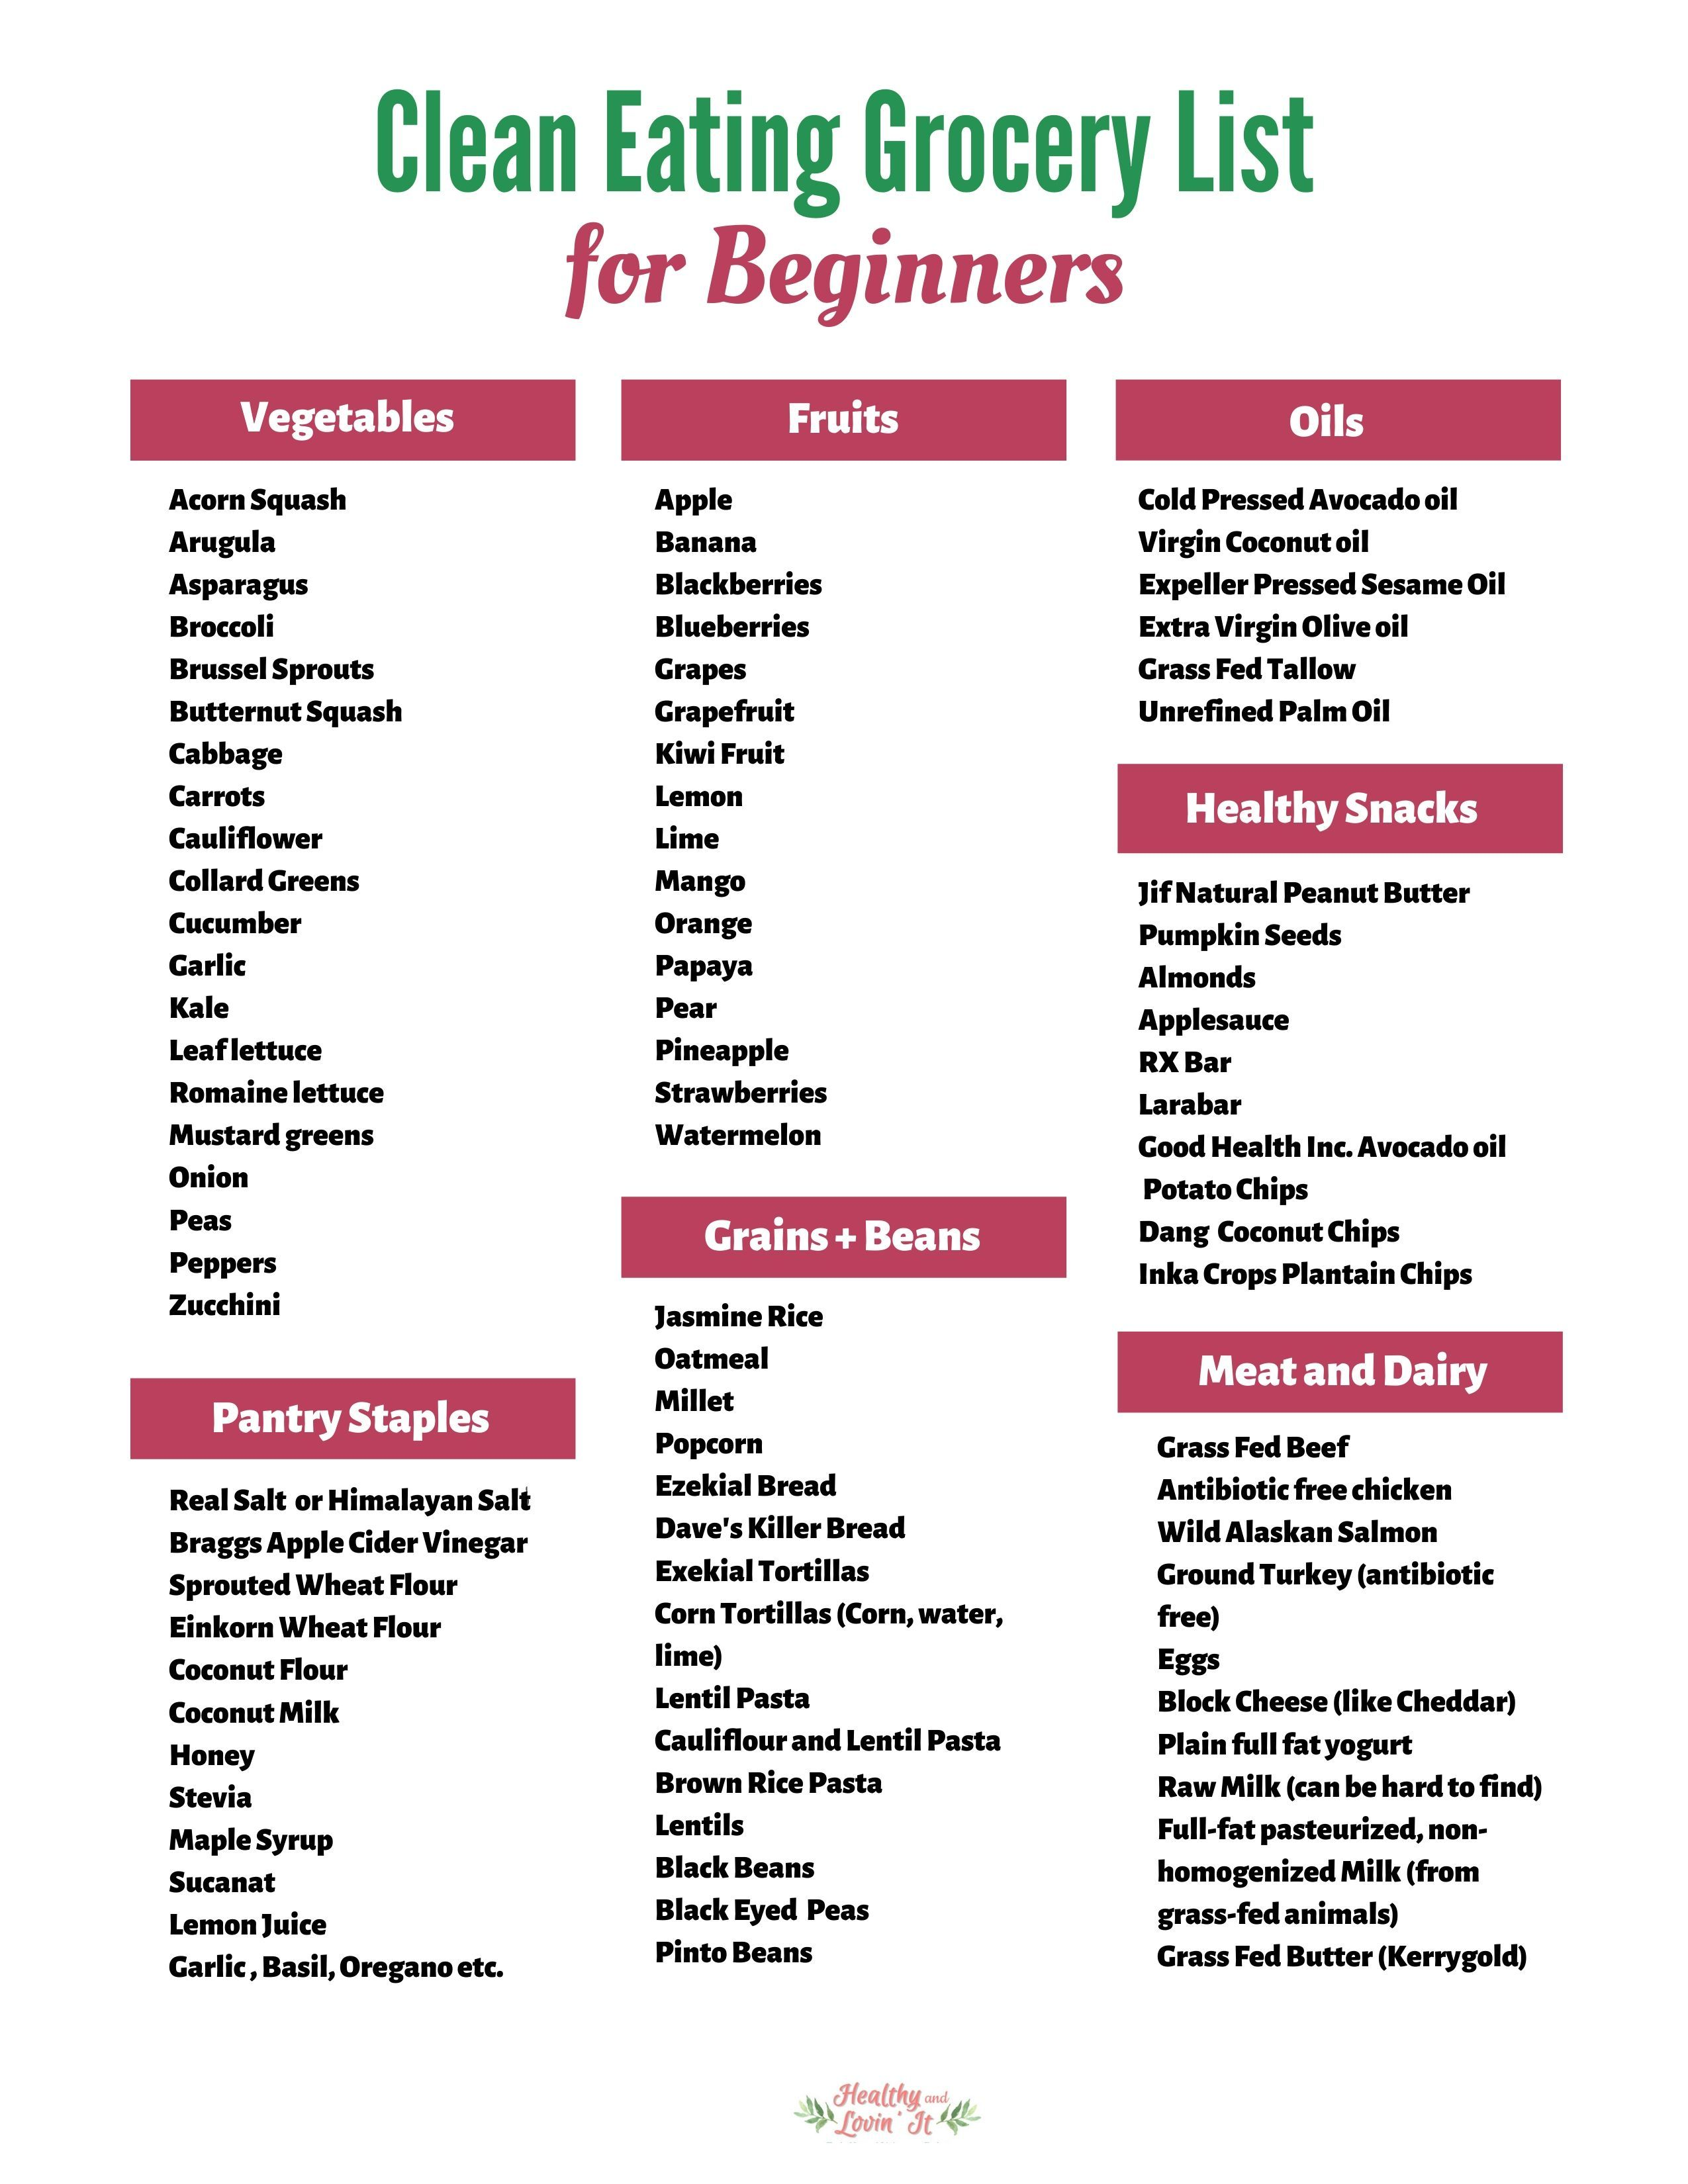 Clean eating food list printable complete list for